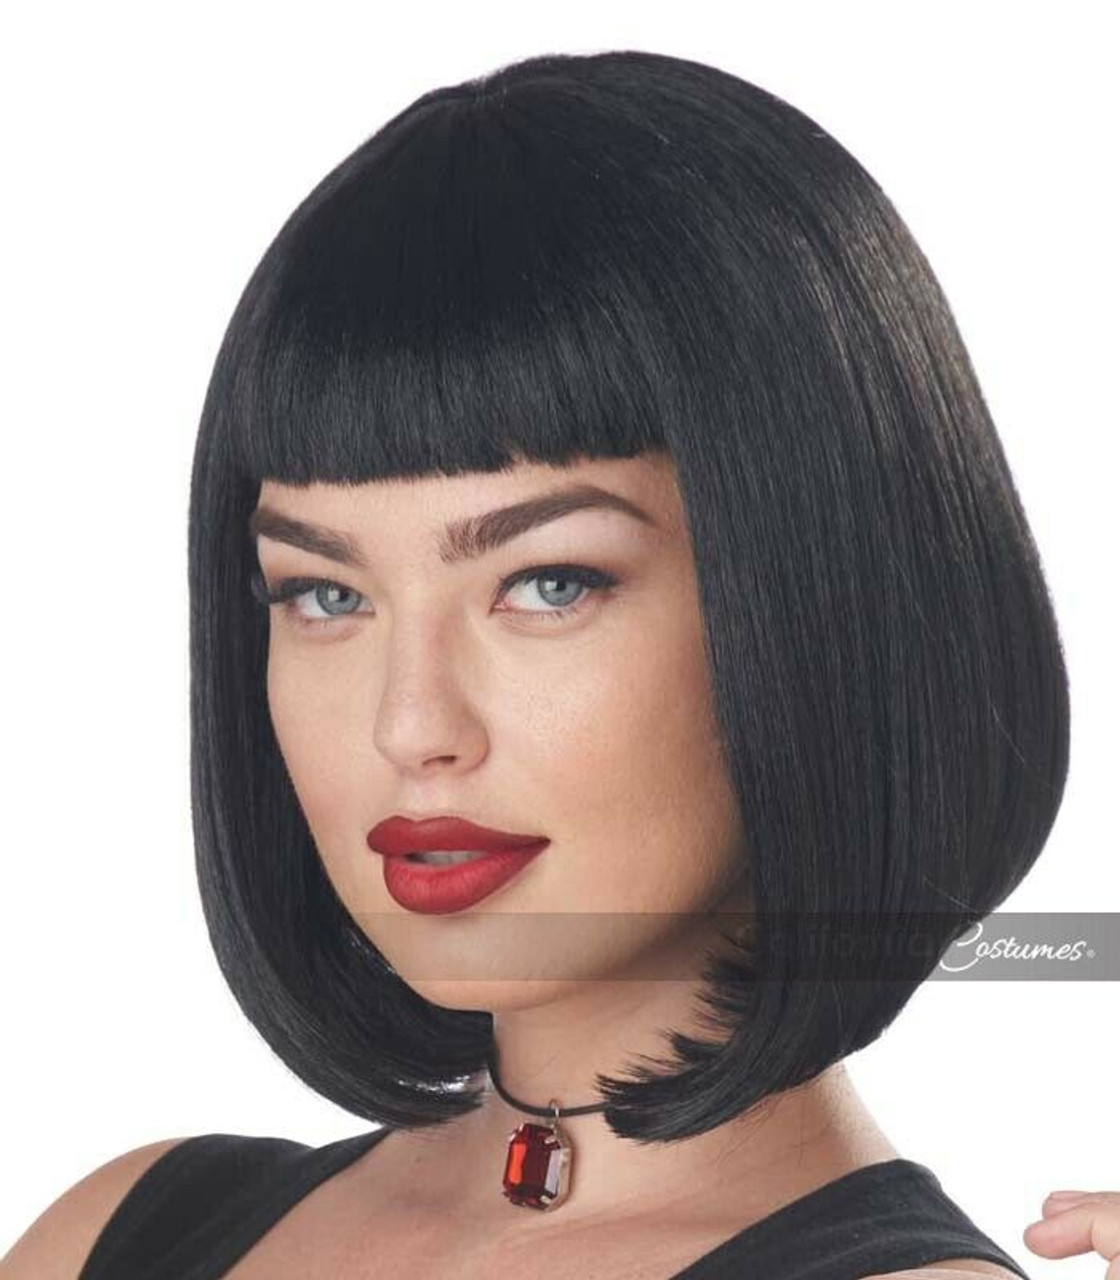 California Costumes 90s Pulp Fiction Mia Wallace Bob Wig Halloween Costume 70517 Fearless Apparel